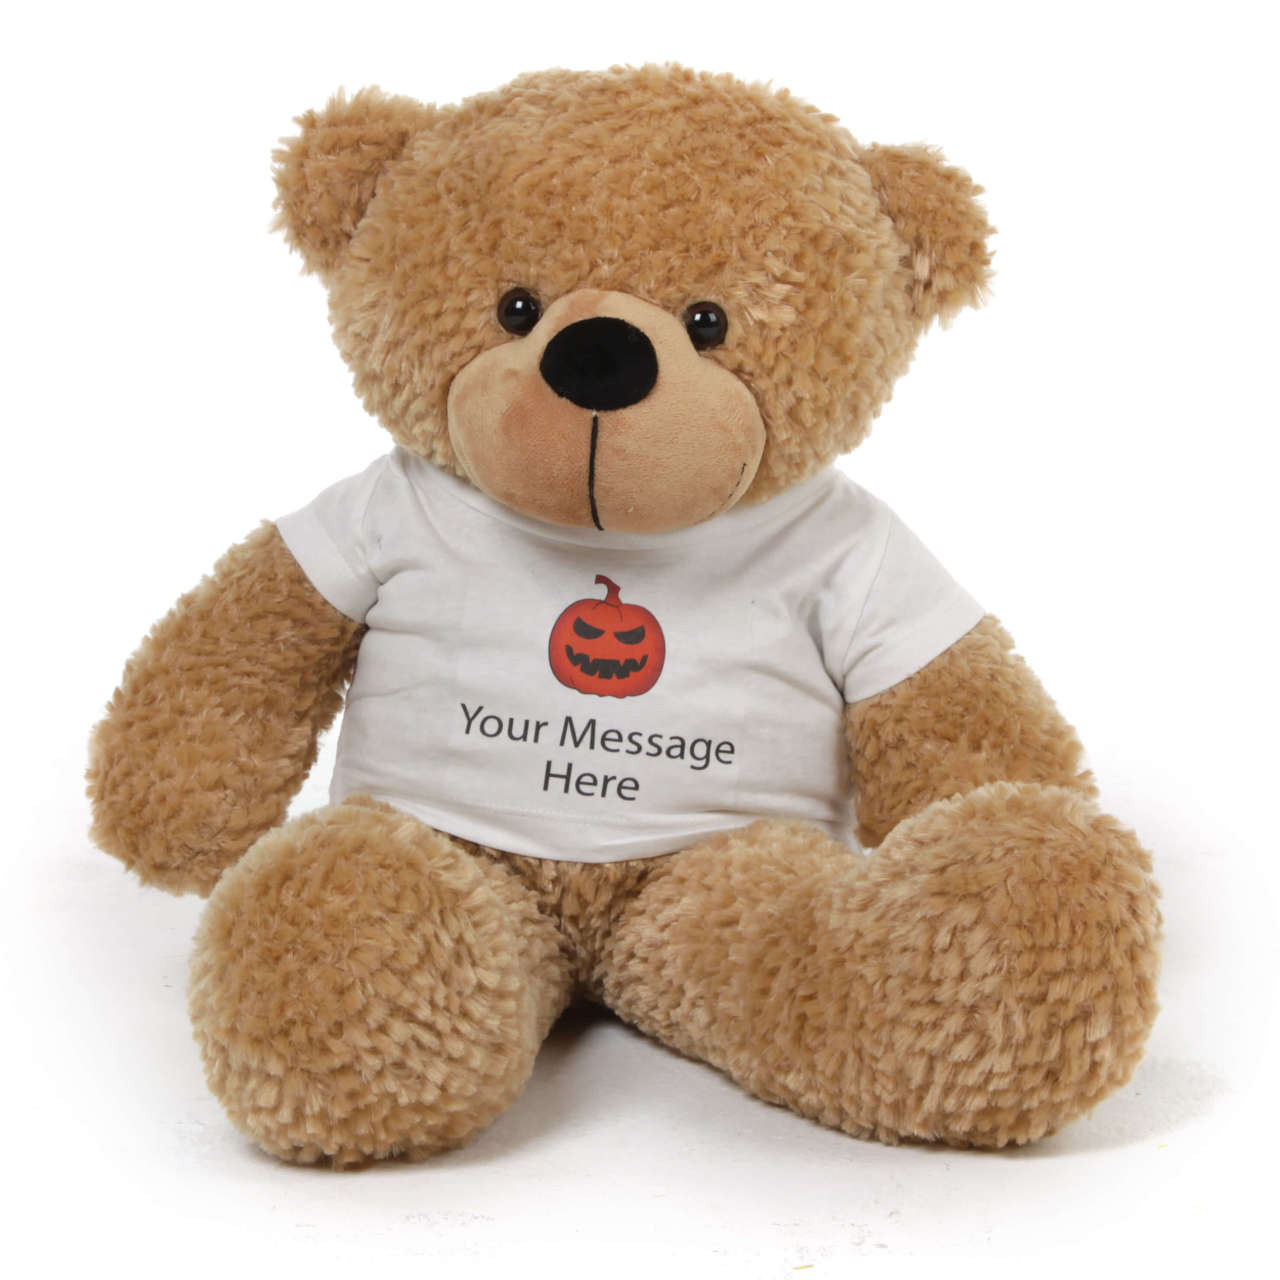 "Personalized Giant Halloween Teddy Bear 24"" Shaggy Cuddles wears your custom message on a Jack-o-lantern t-shirt"